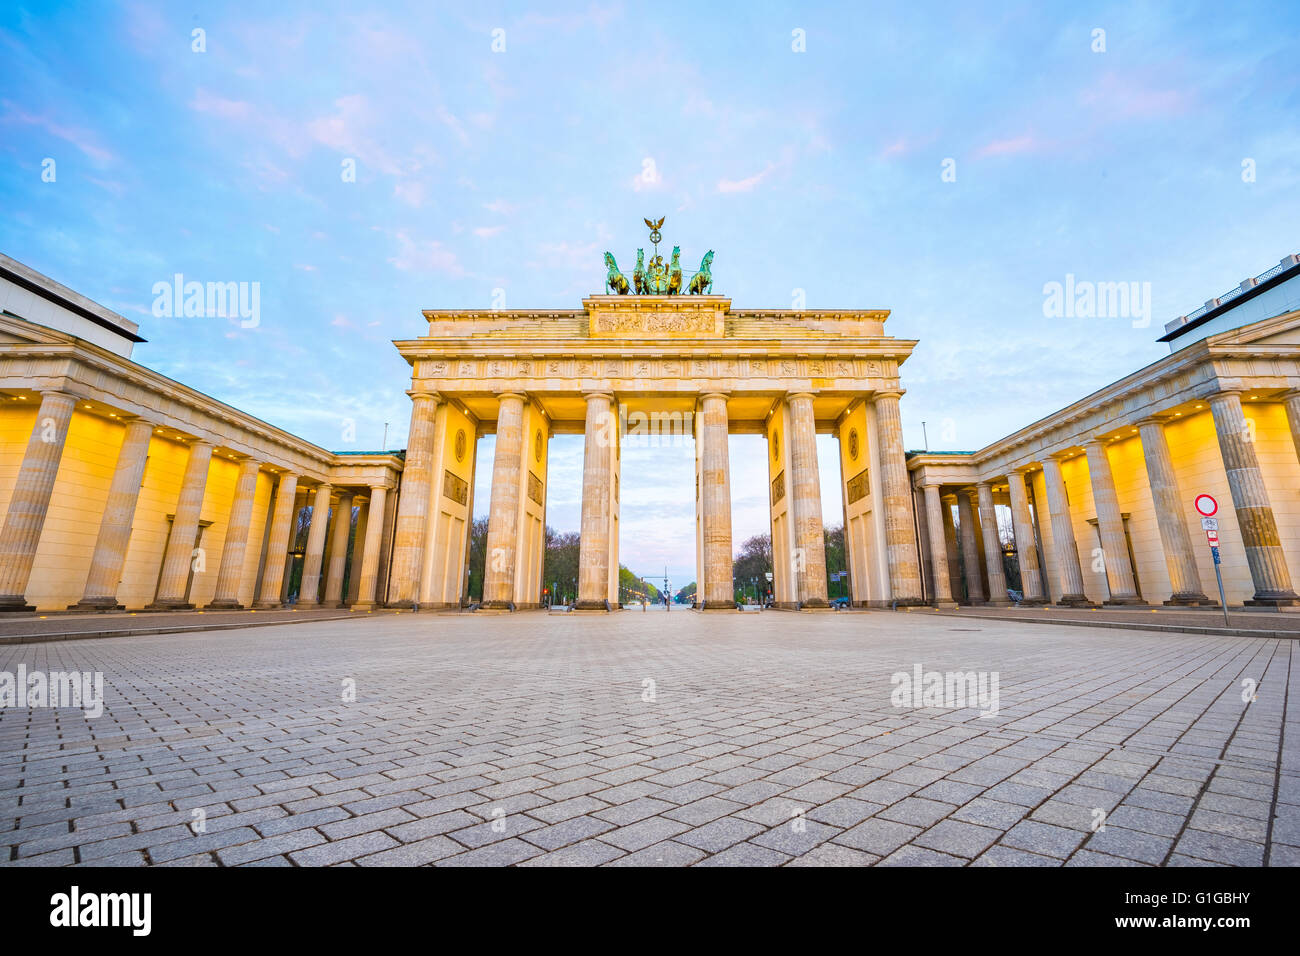 Nice Sky with Brandenburg Gate in Berlin Germany at night. - Stock Image